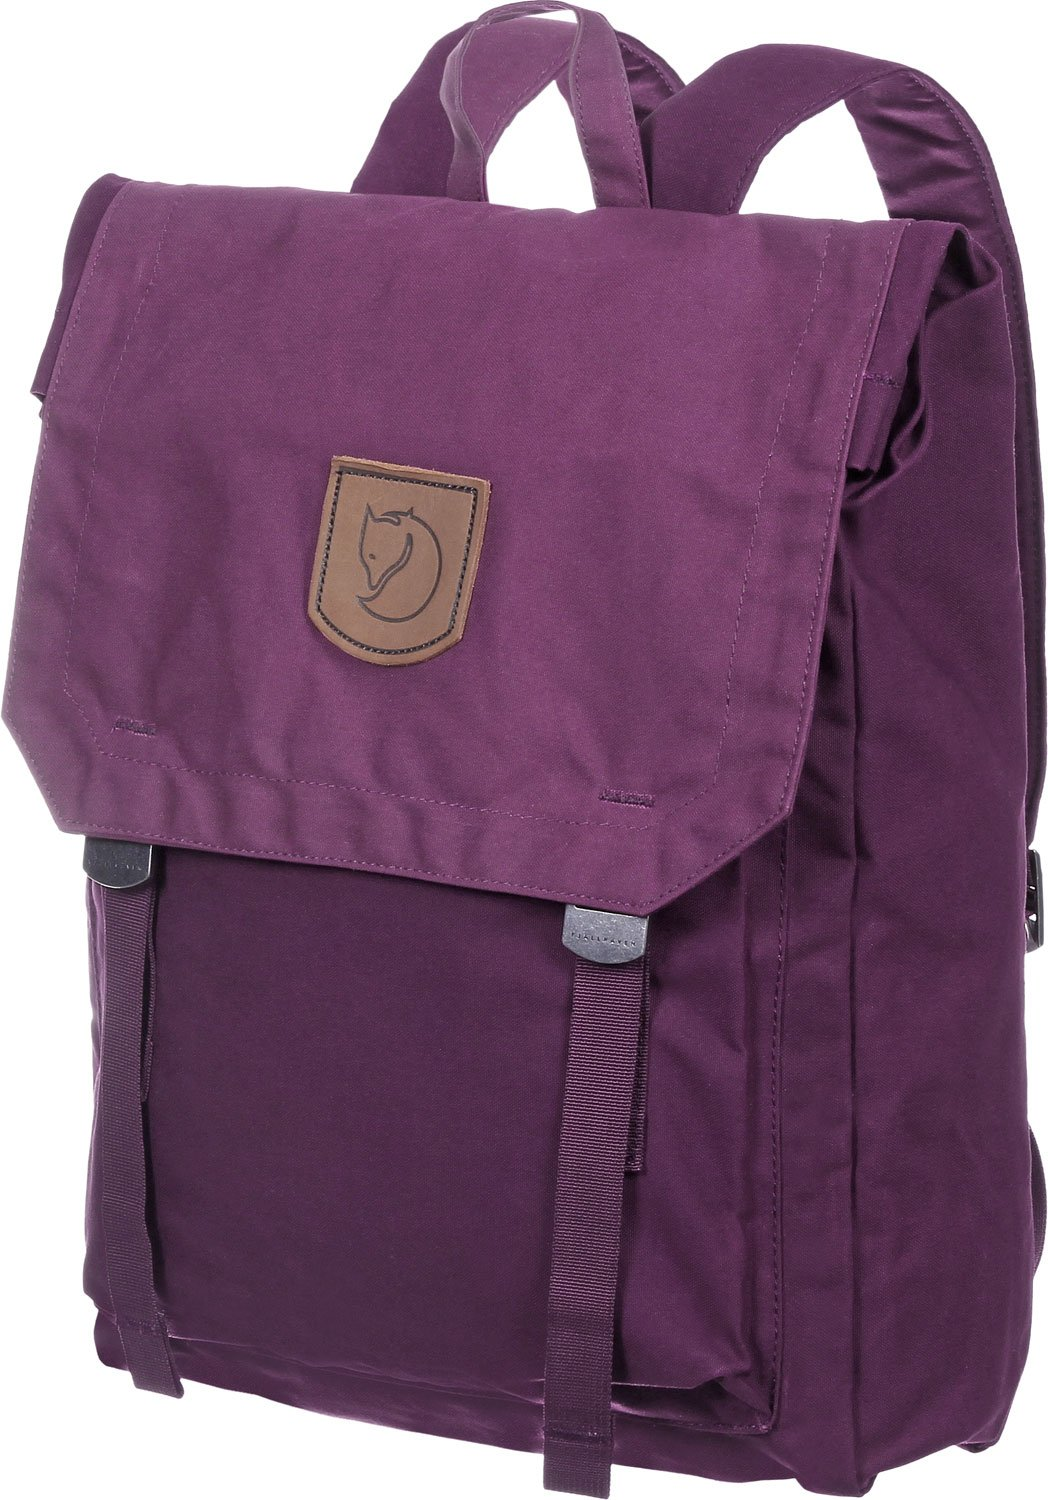 Fjallraven - Foldsack No.1, Alpine Purple-Amethyst by Fjallraven